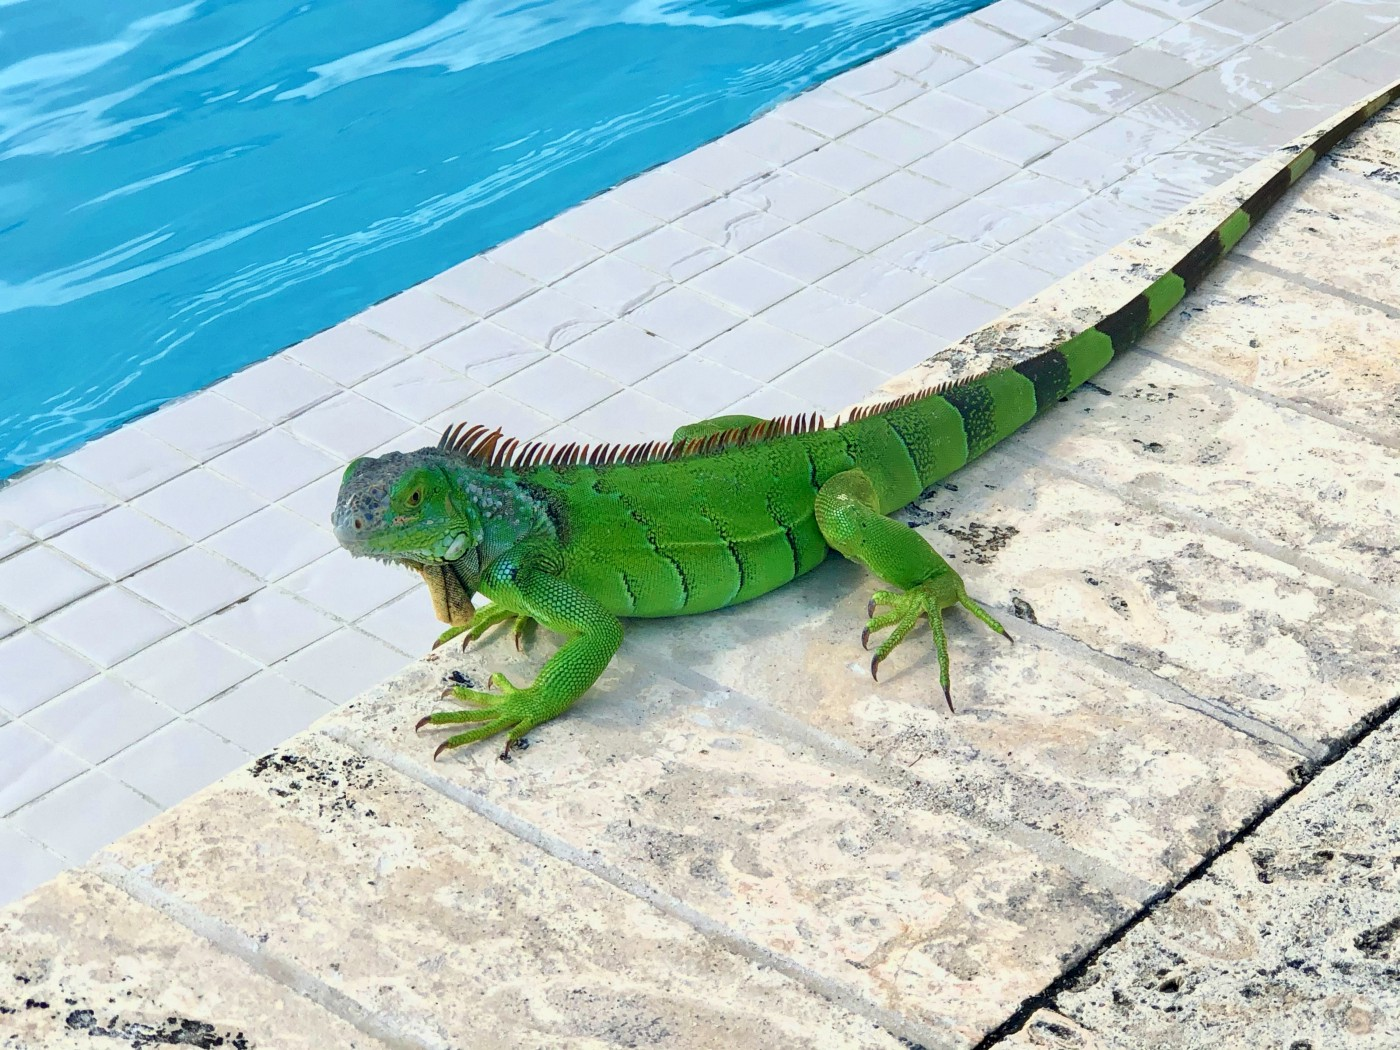 A green iguana by a swimming pool.